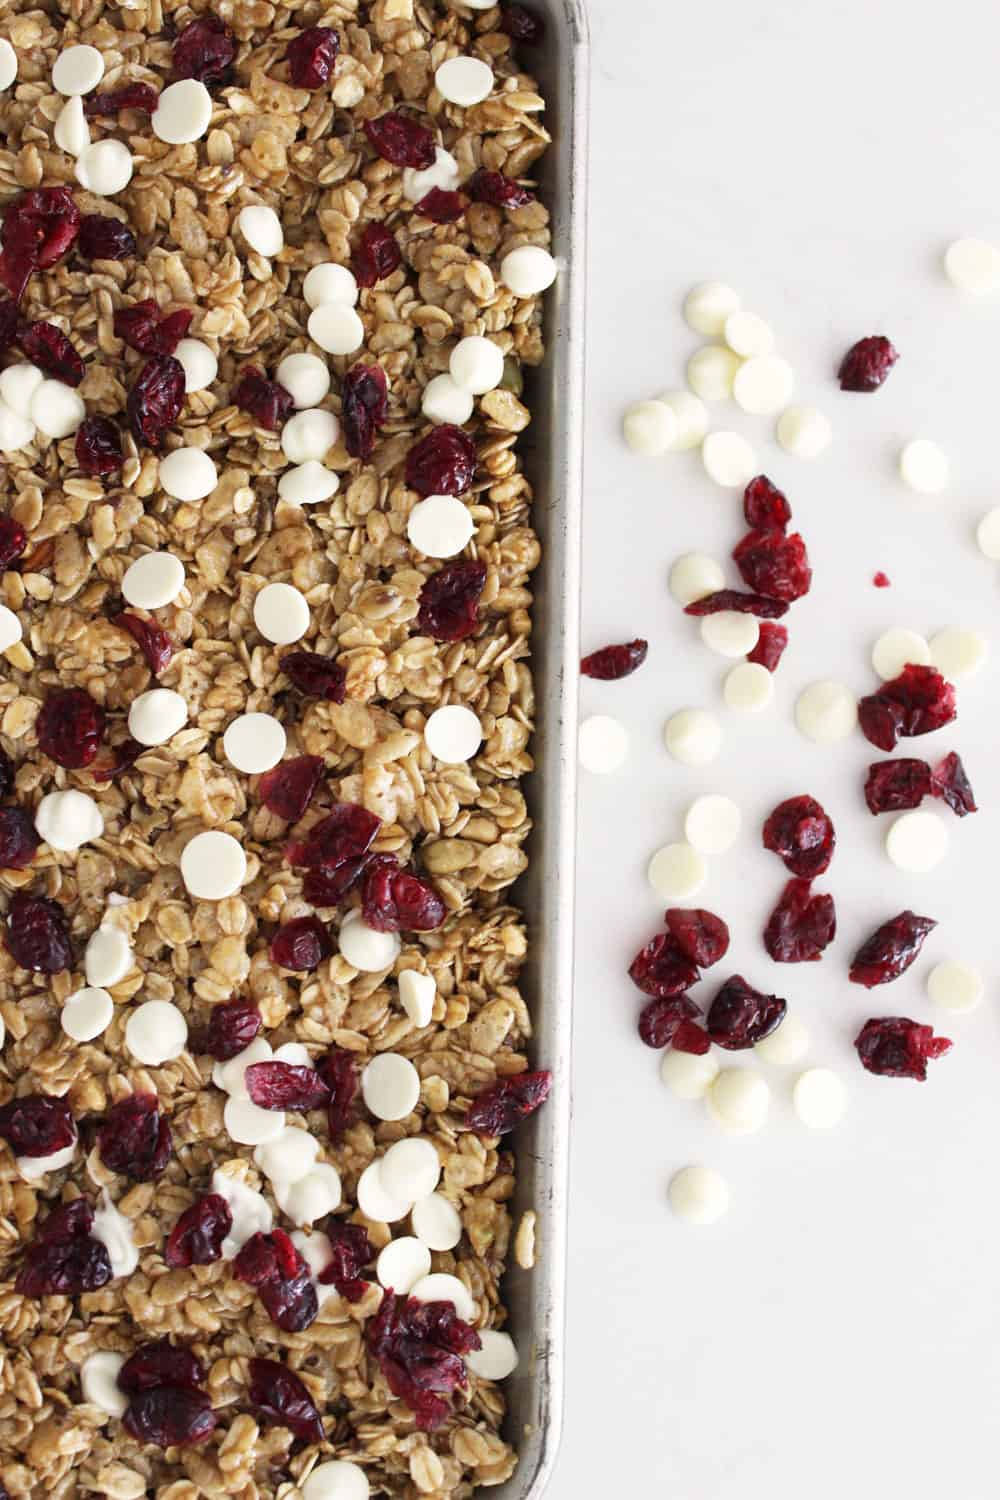 White chocolate cranberry granola bars pressed in a pan ready to cut